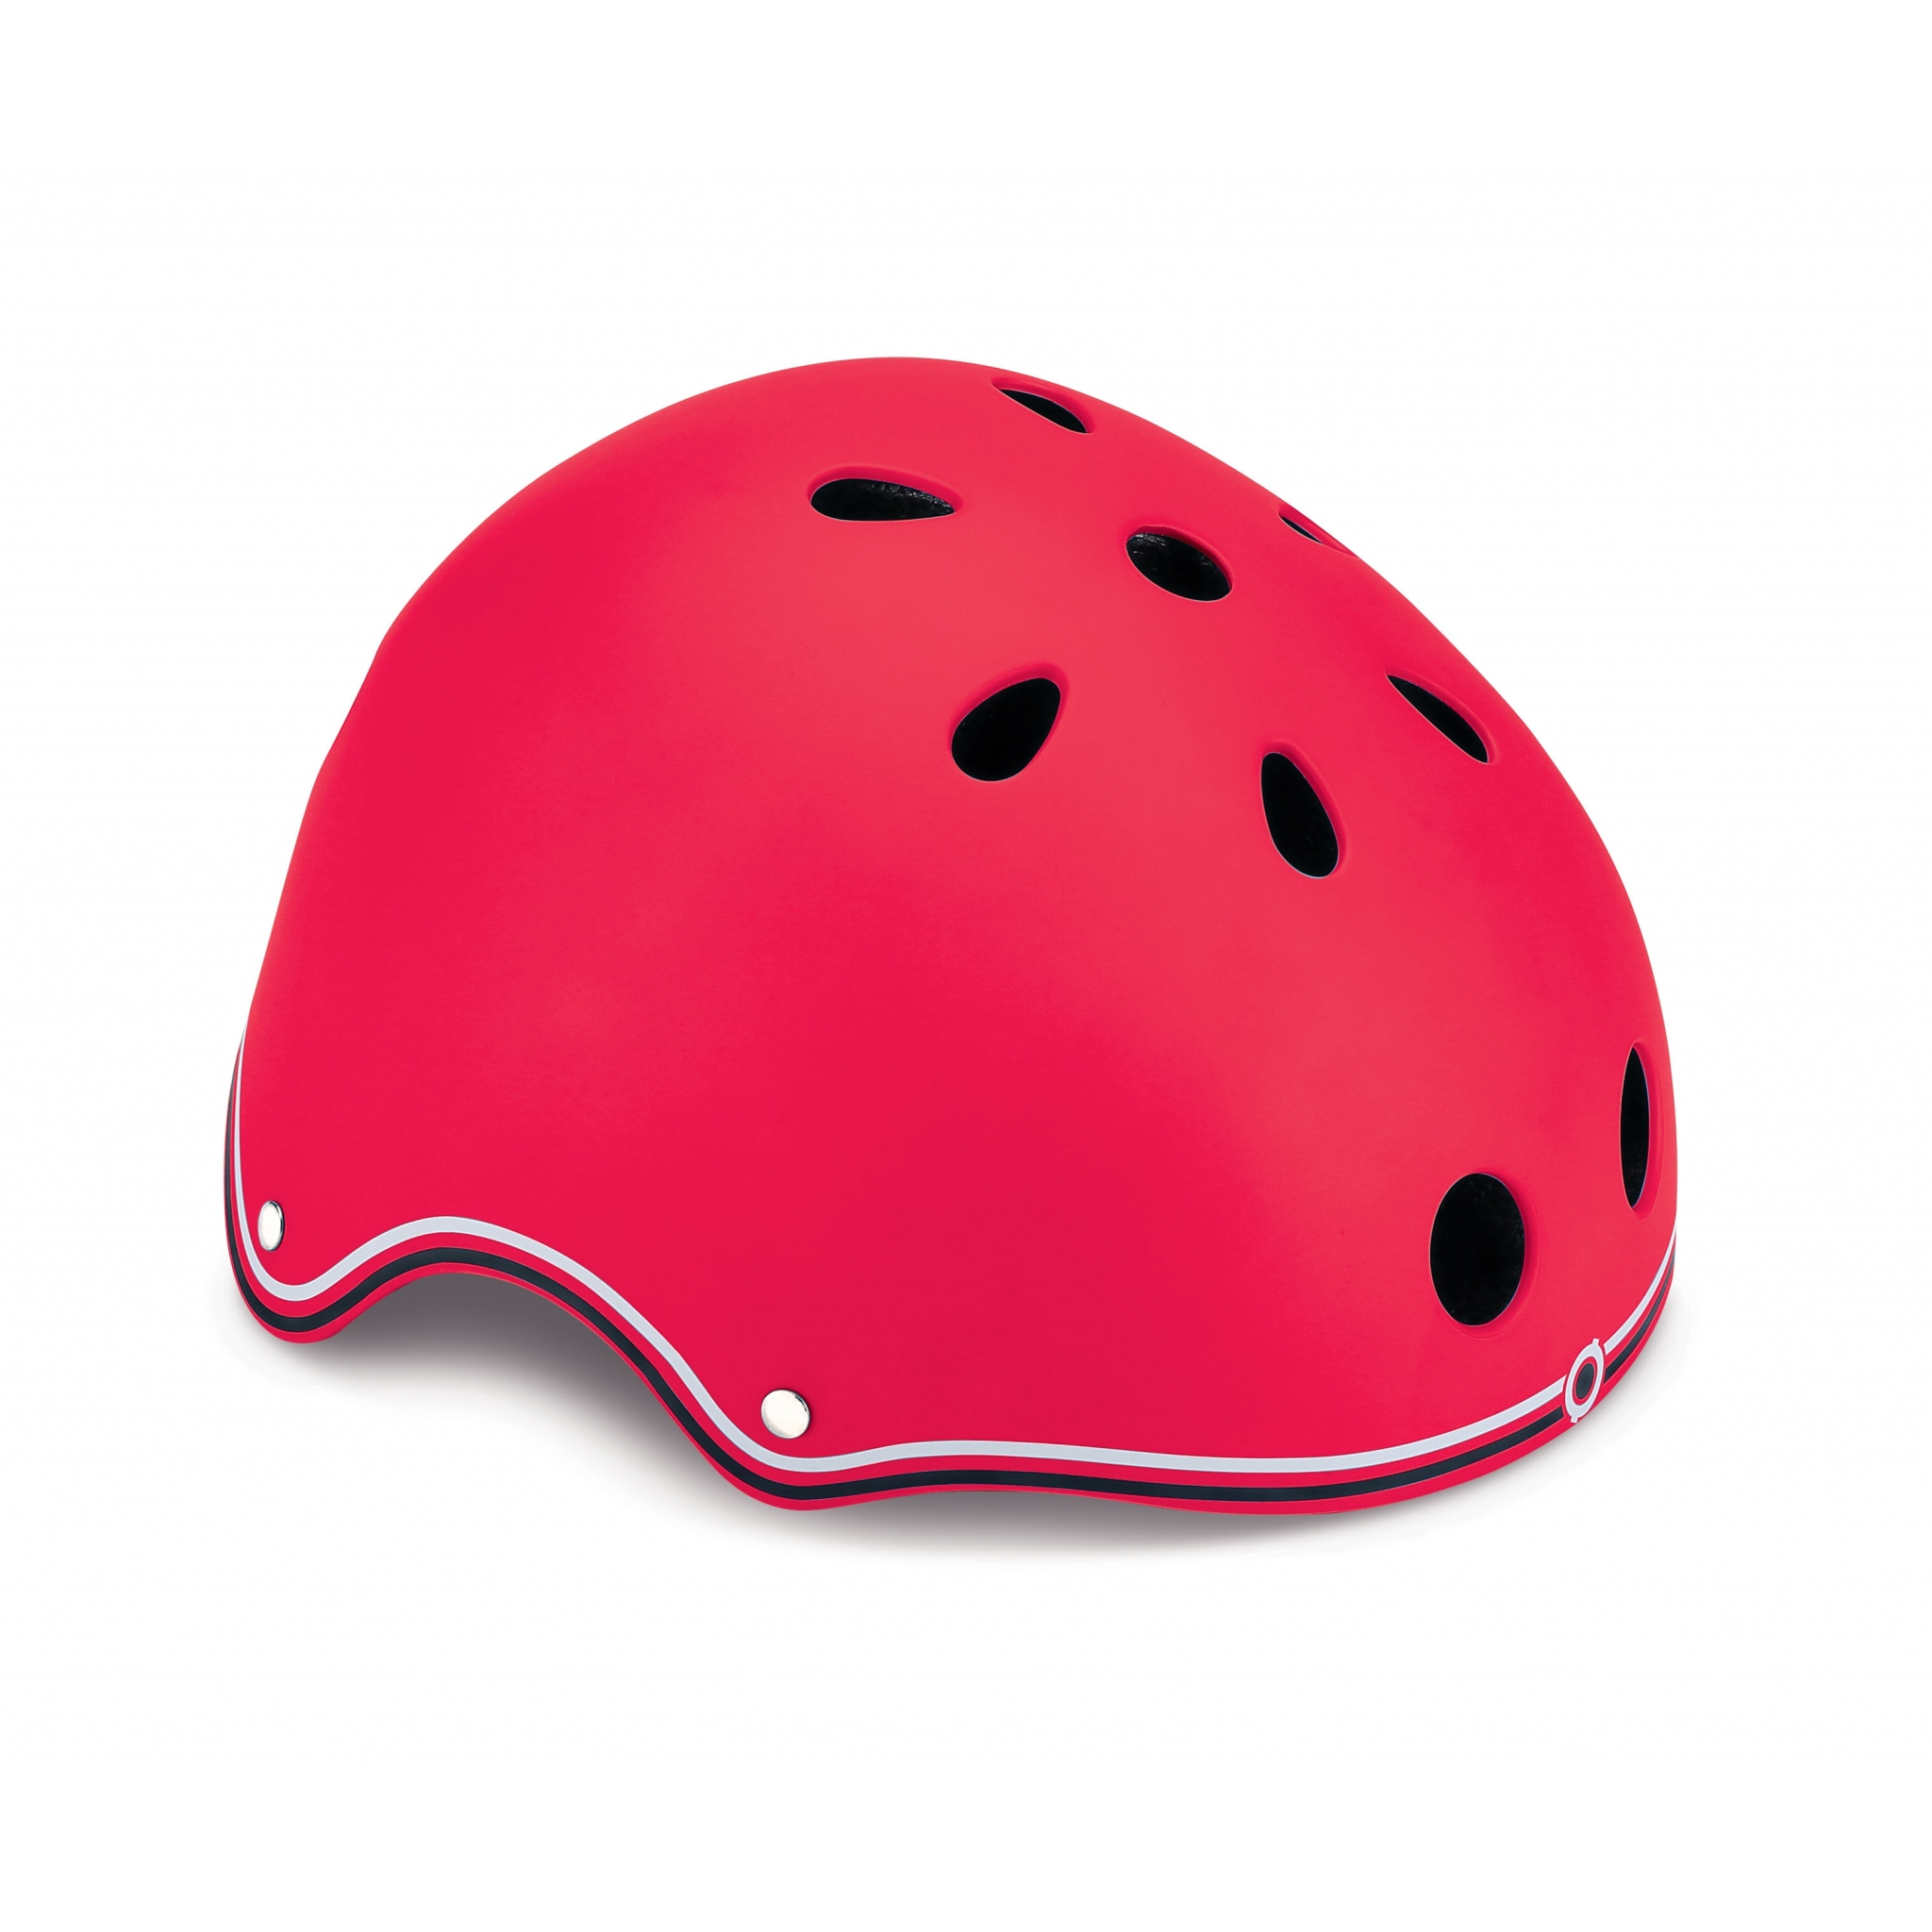 ca277792fa3c Globber helmet accessories for kids - protective gear for kids ...